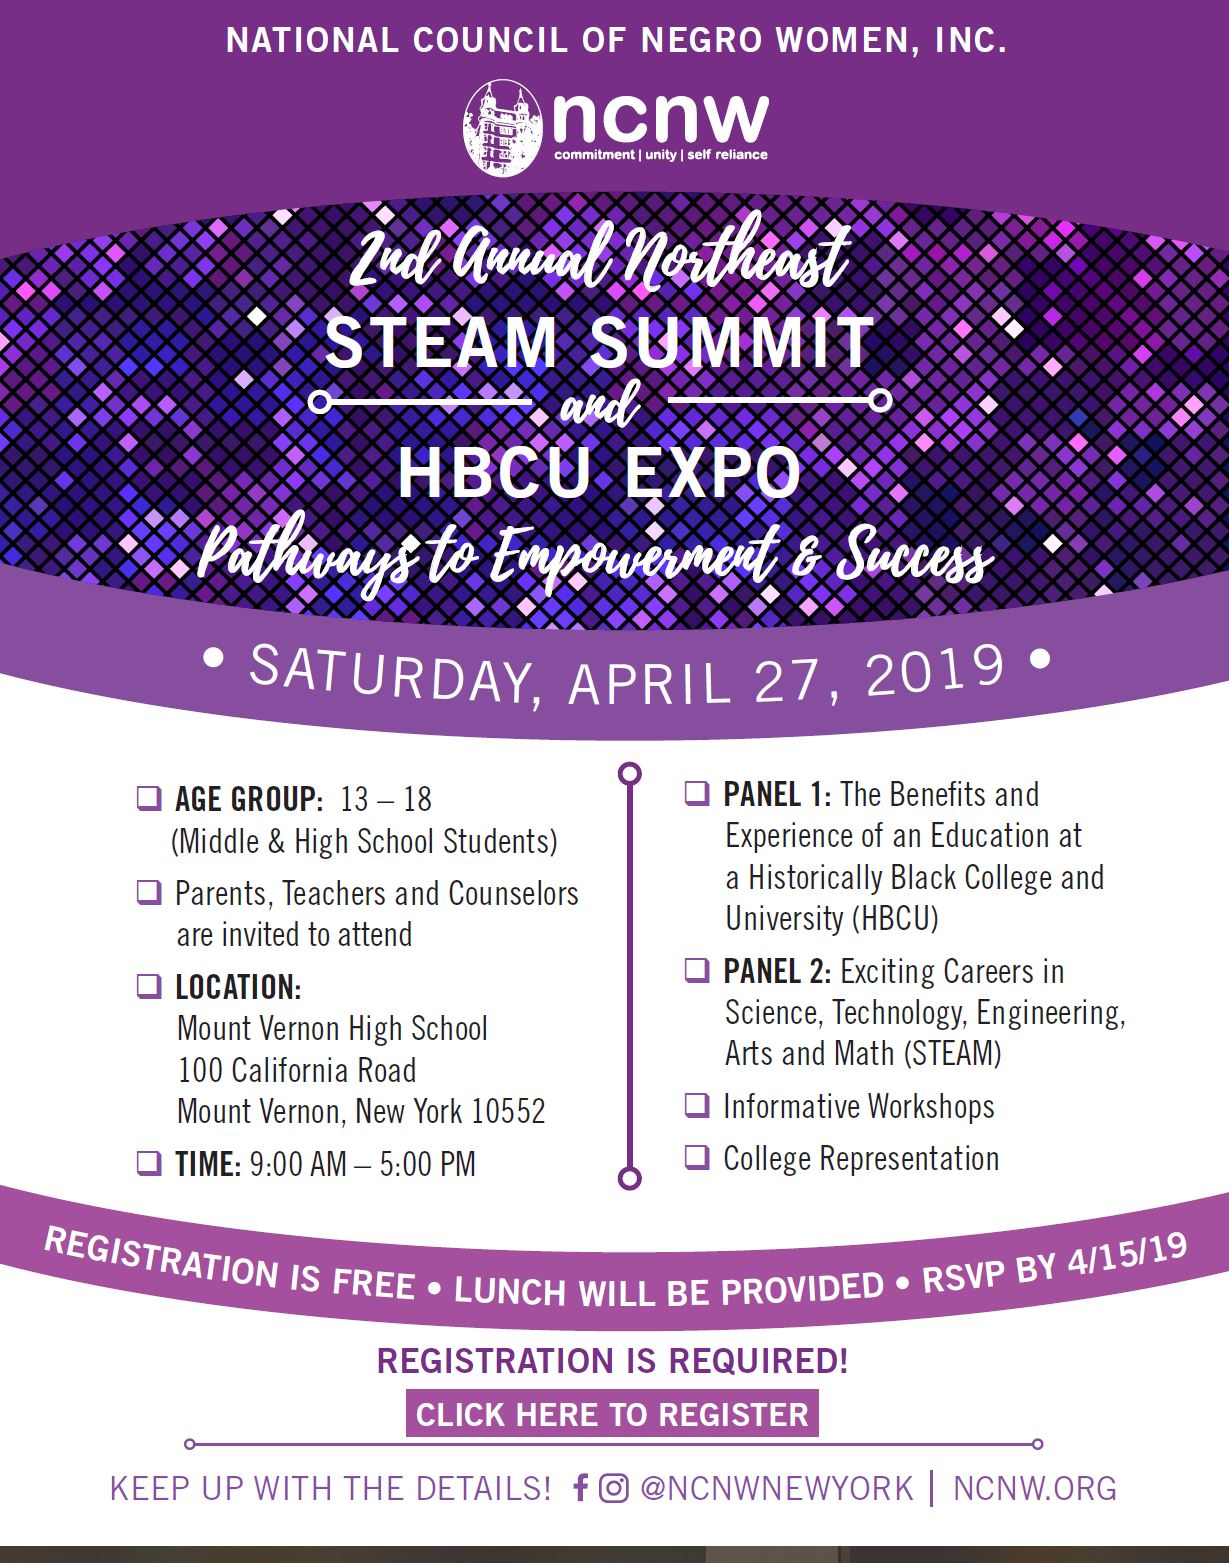 NCNW to Host 2nd Annual STEAM Summit